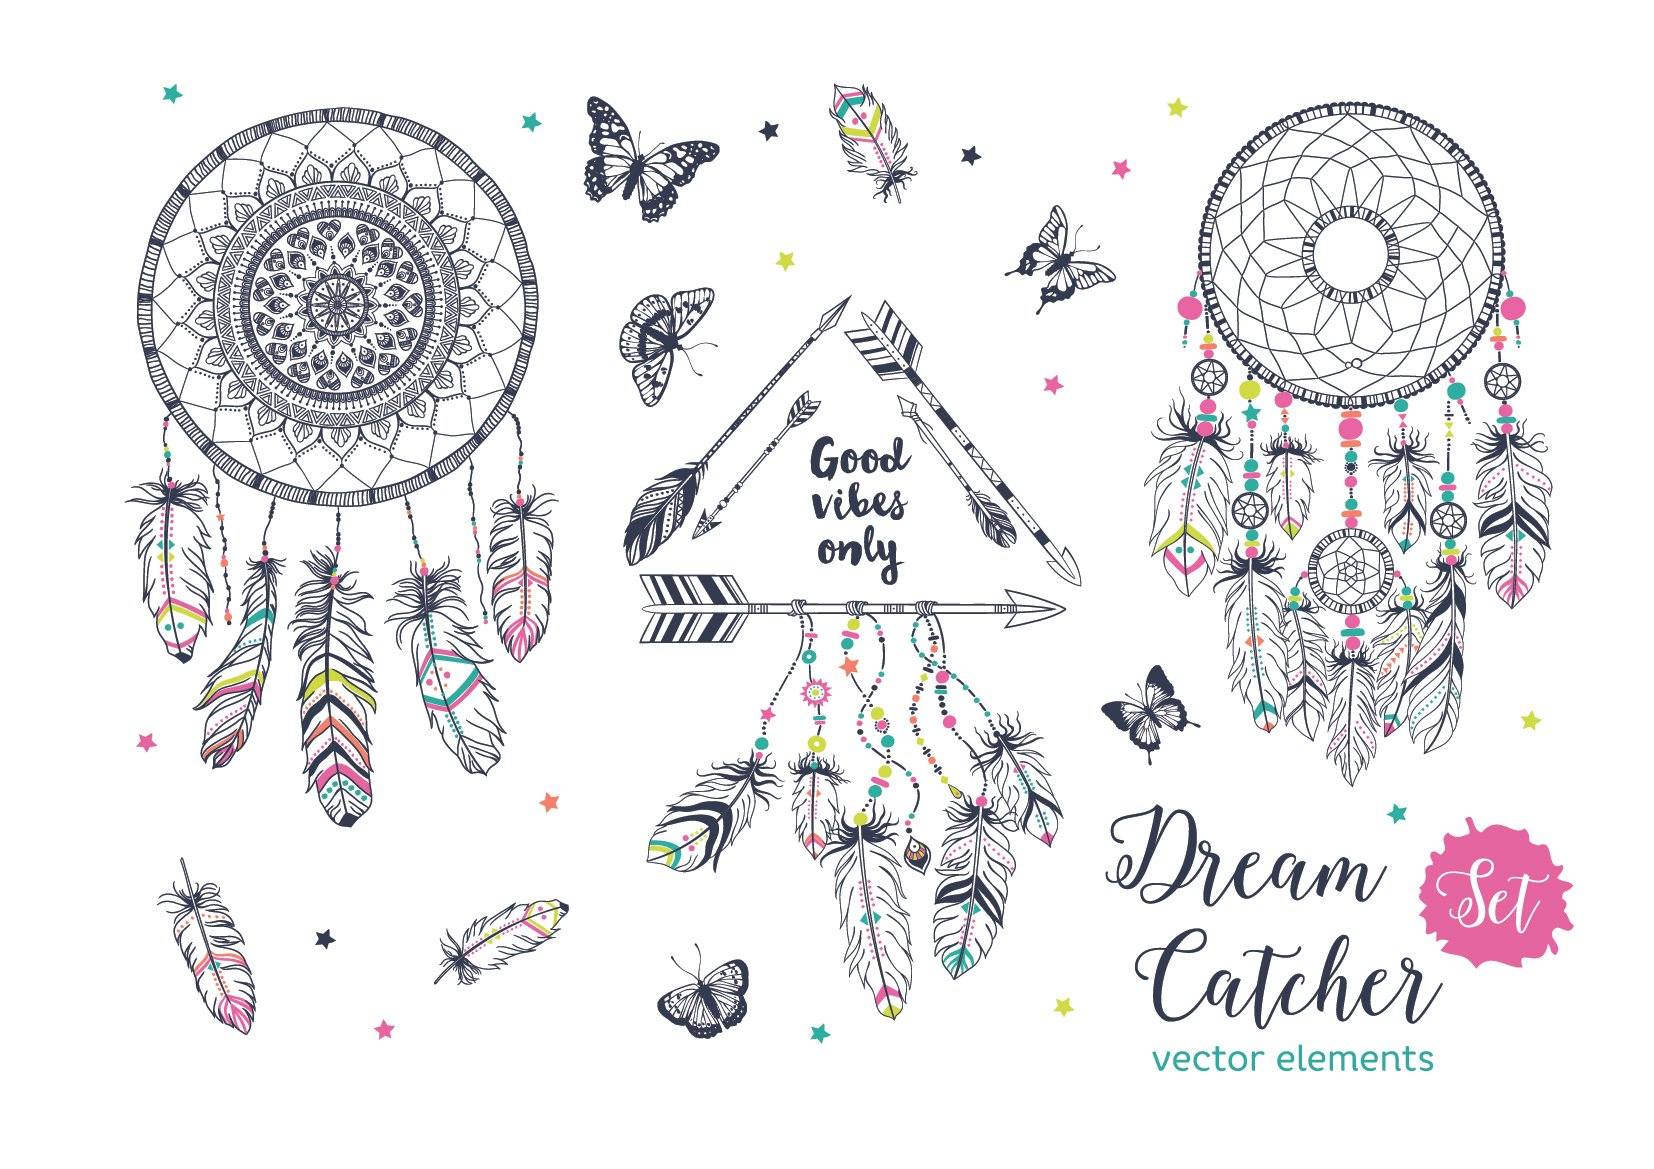 dreamcatcher photos graphics fonts themes templates creative